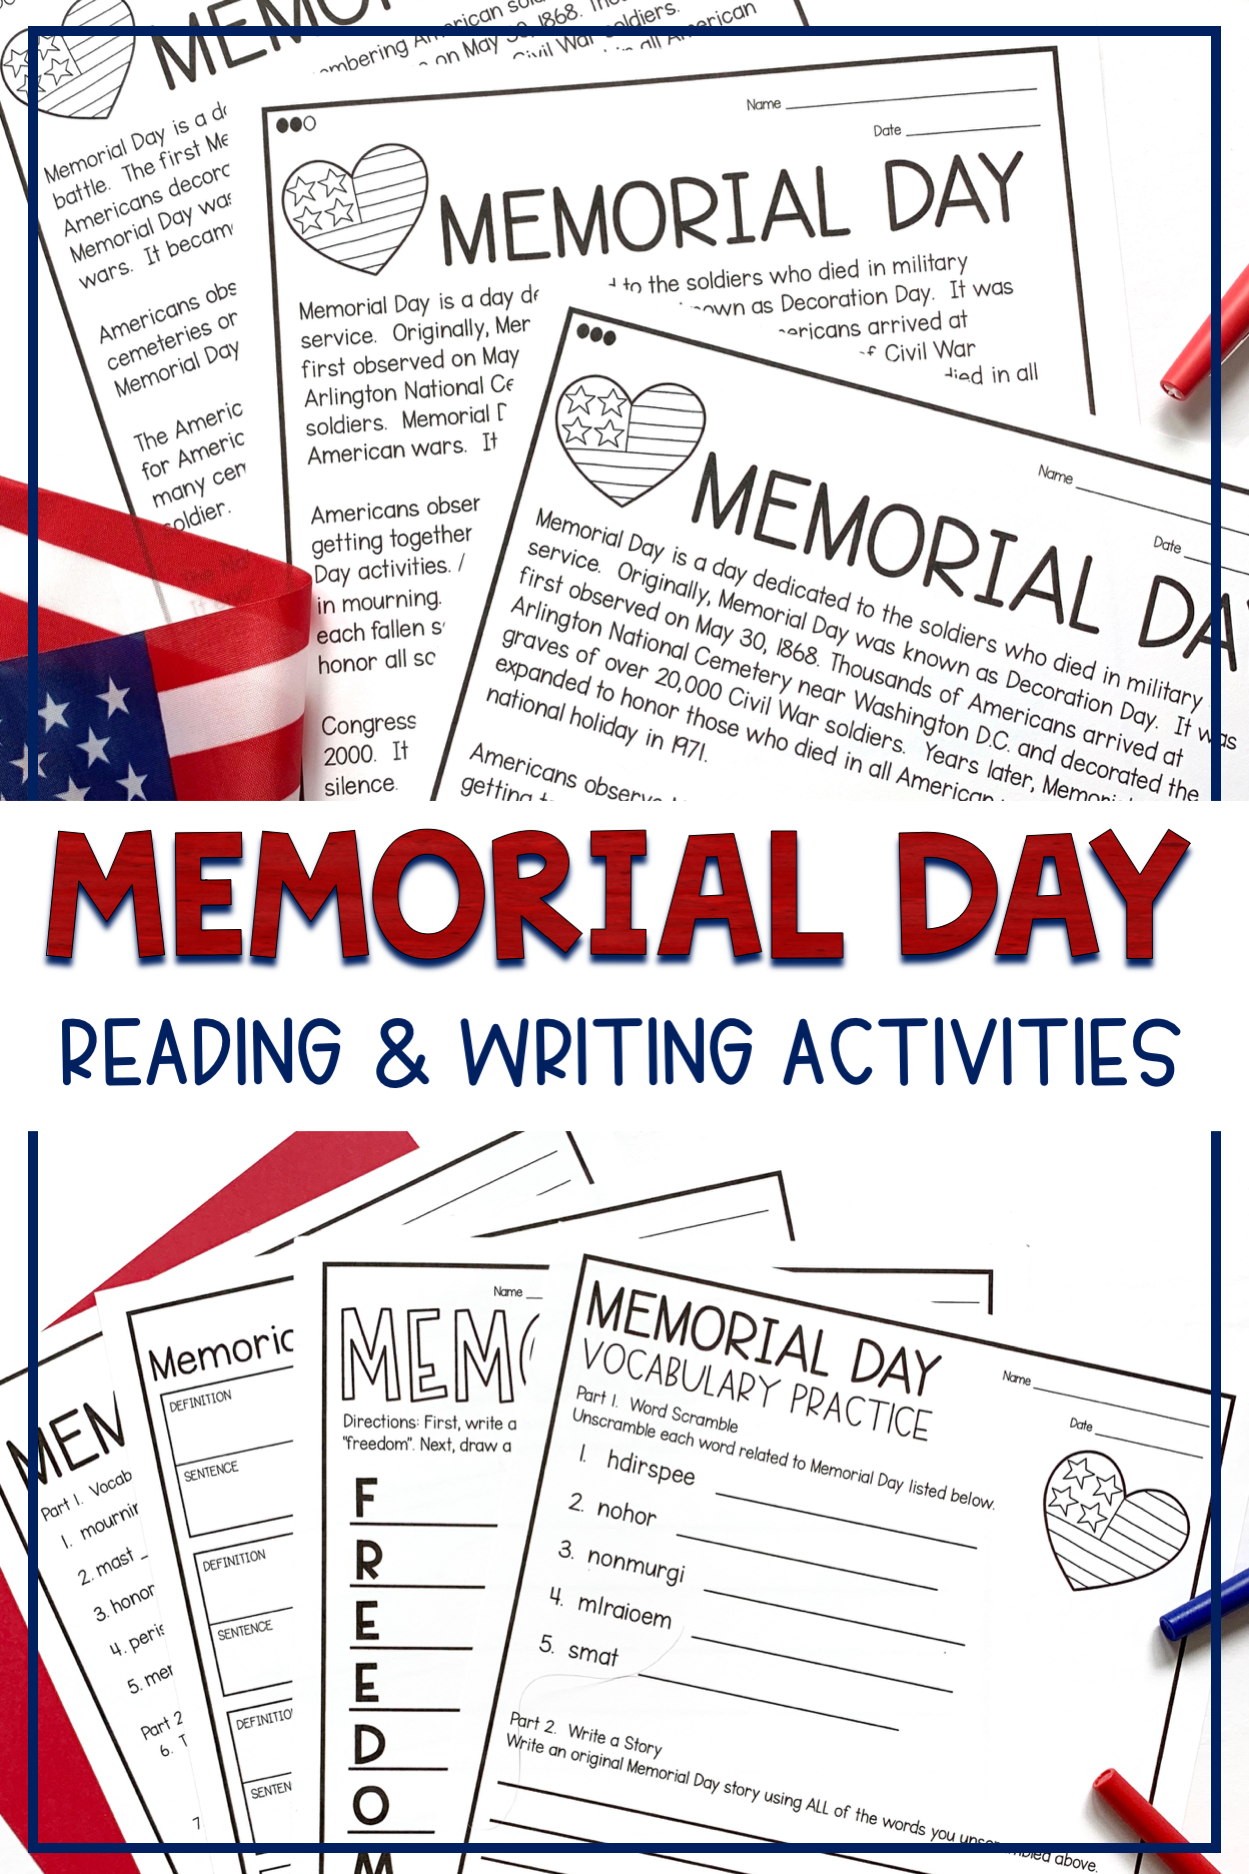 Memorial Day Reading Comprehension And Writing Activities Differentiated Reading Activities Reading Comprehension Differentiated Reading [ 1874 x 1249 Pixel ]